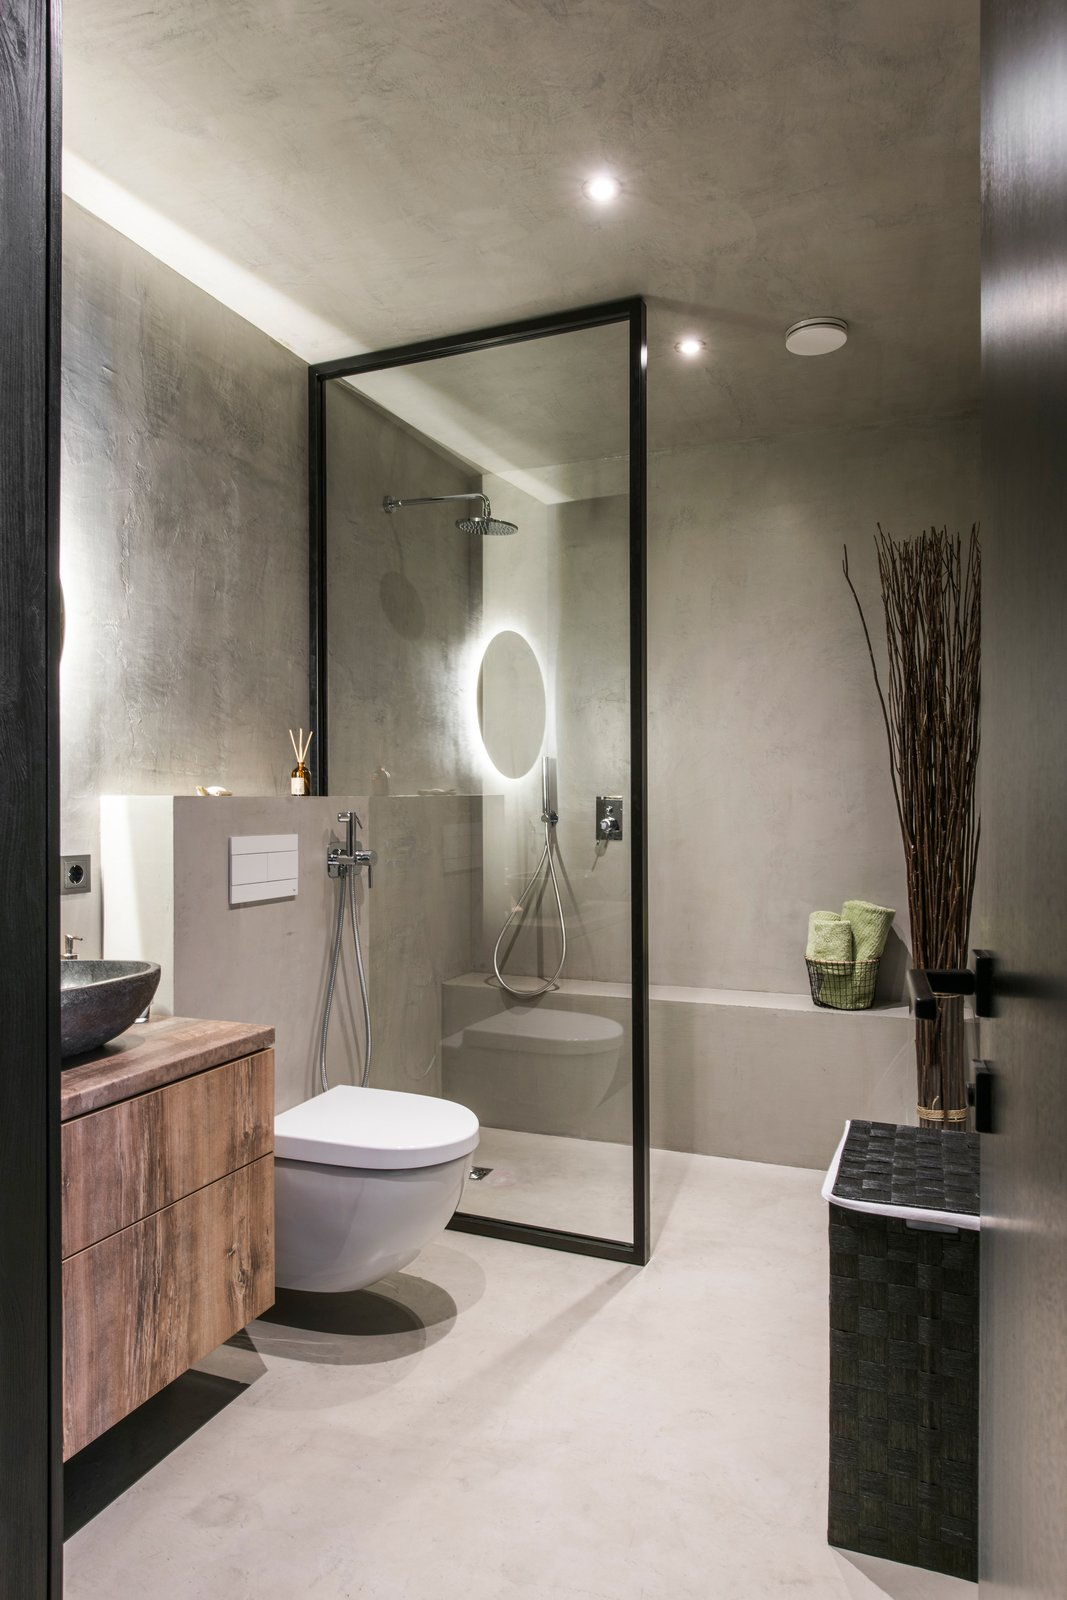 Bath, Concrete, Vessel, Laminate, Open, Accent, Ceiling, Concrete, and One Piece  Best Bath Laminate Ceiling Vessel Accent Concrete Photos from Drills&Hollywood